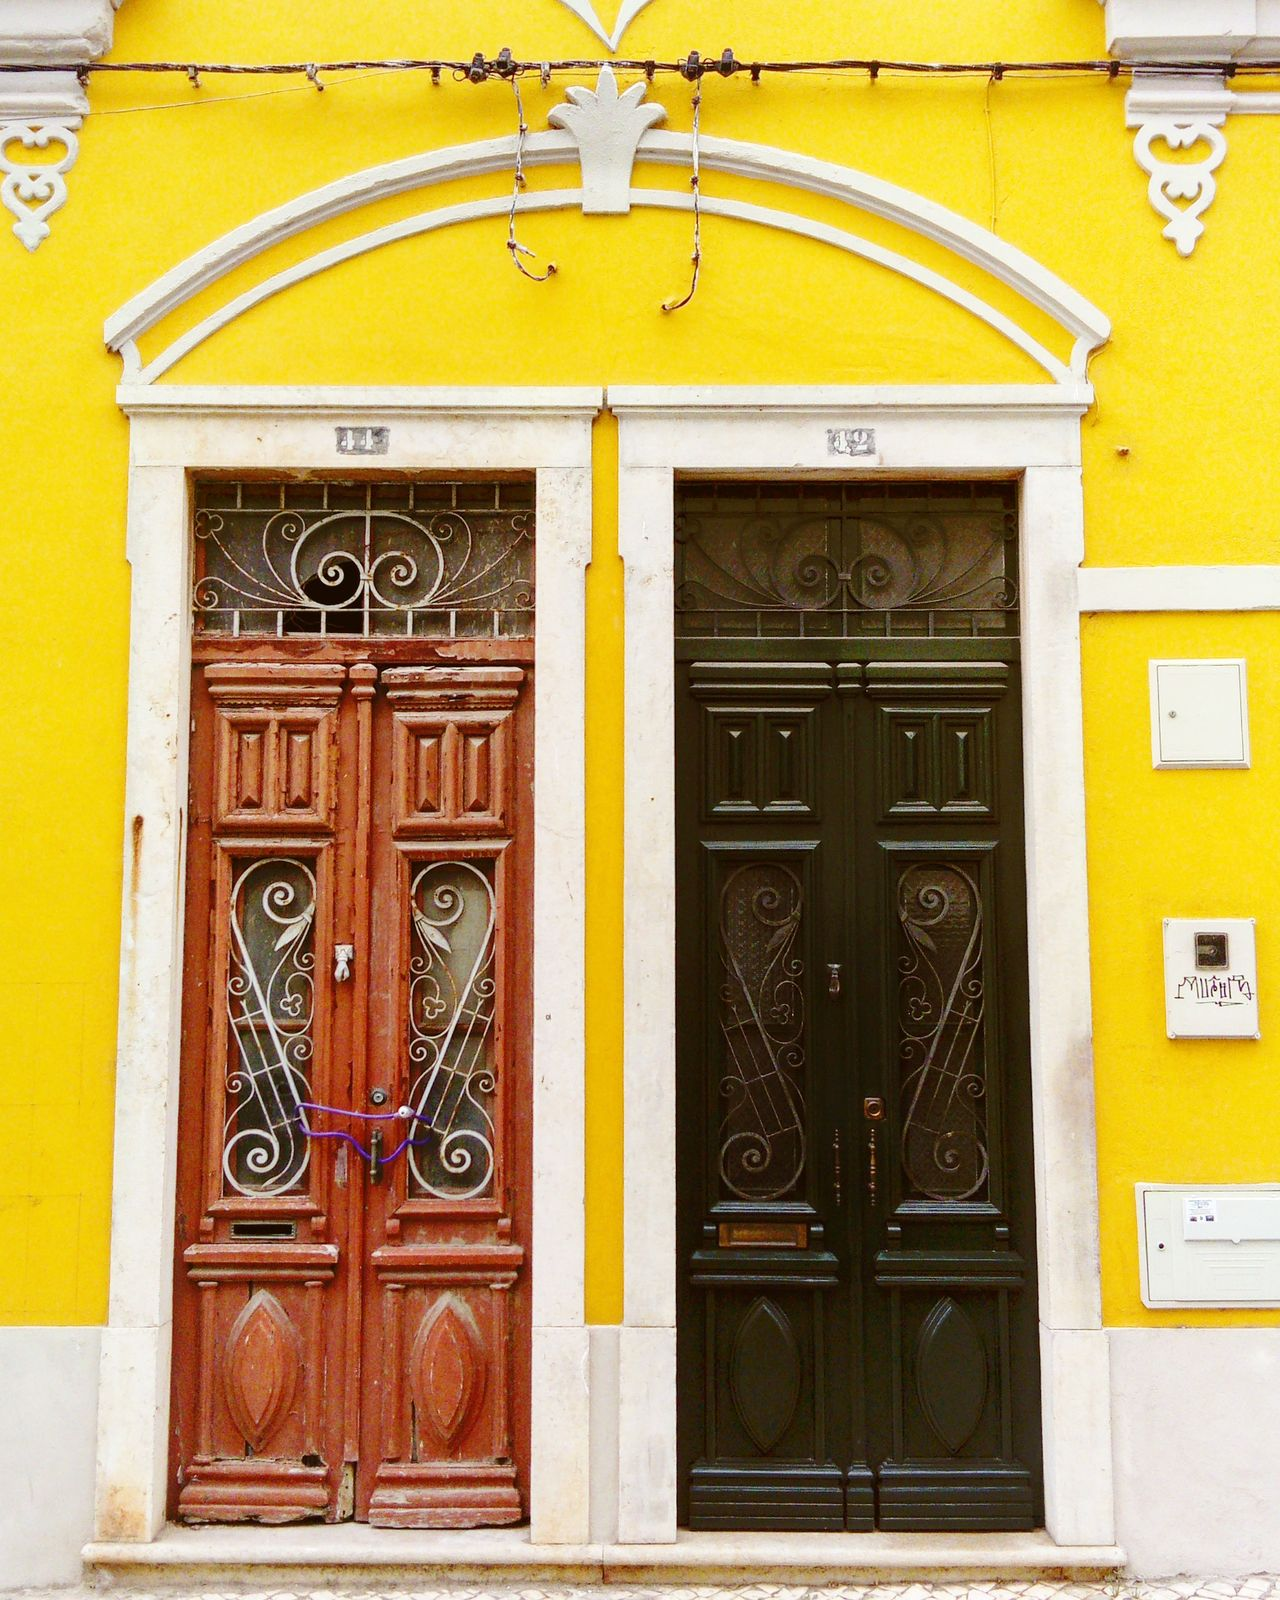 Door Architecture Entrance Outdoors Building Exterior Yellow Ornate Built Structure Day Façade No People Close-up Multi Colored Old Buildings Abandoned Place With Restored Faro, Portugal 🎈👻 Paint The Town Yellow